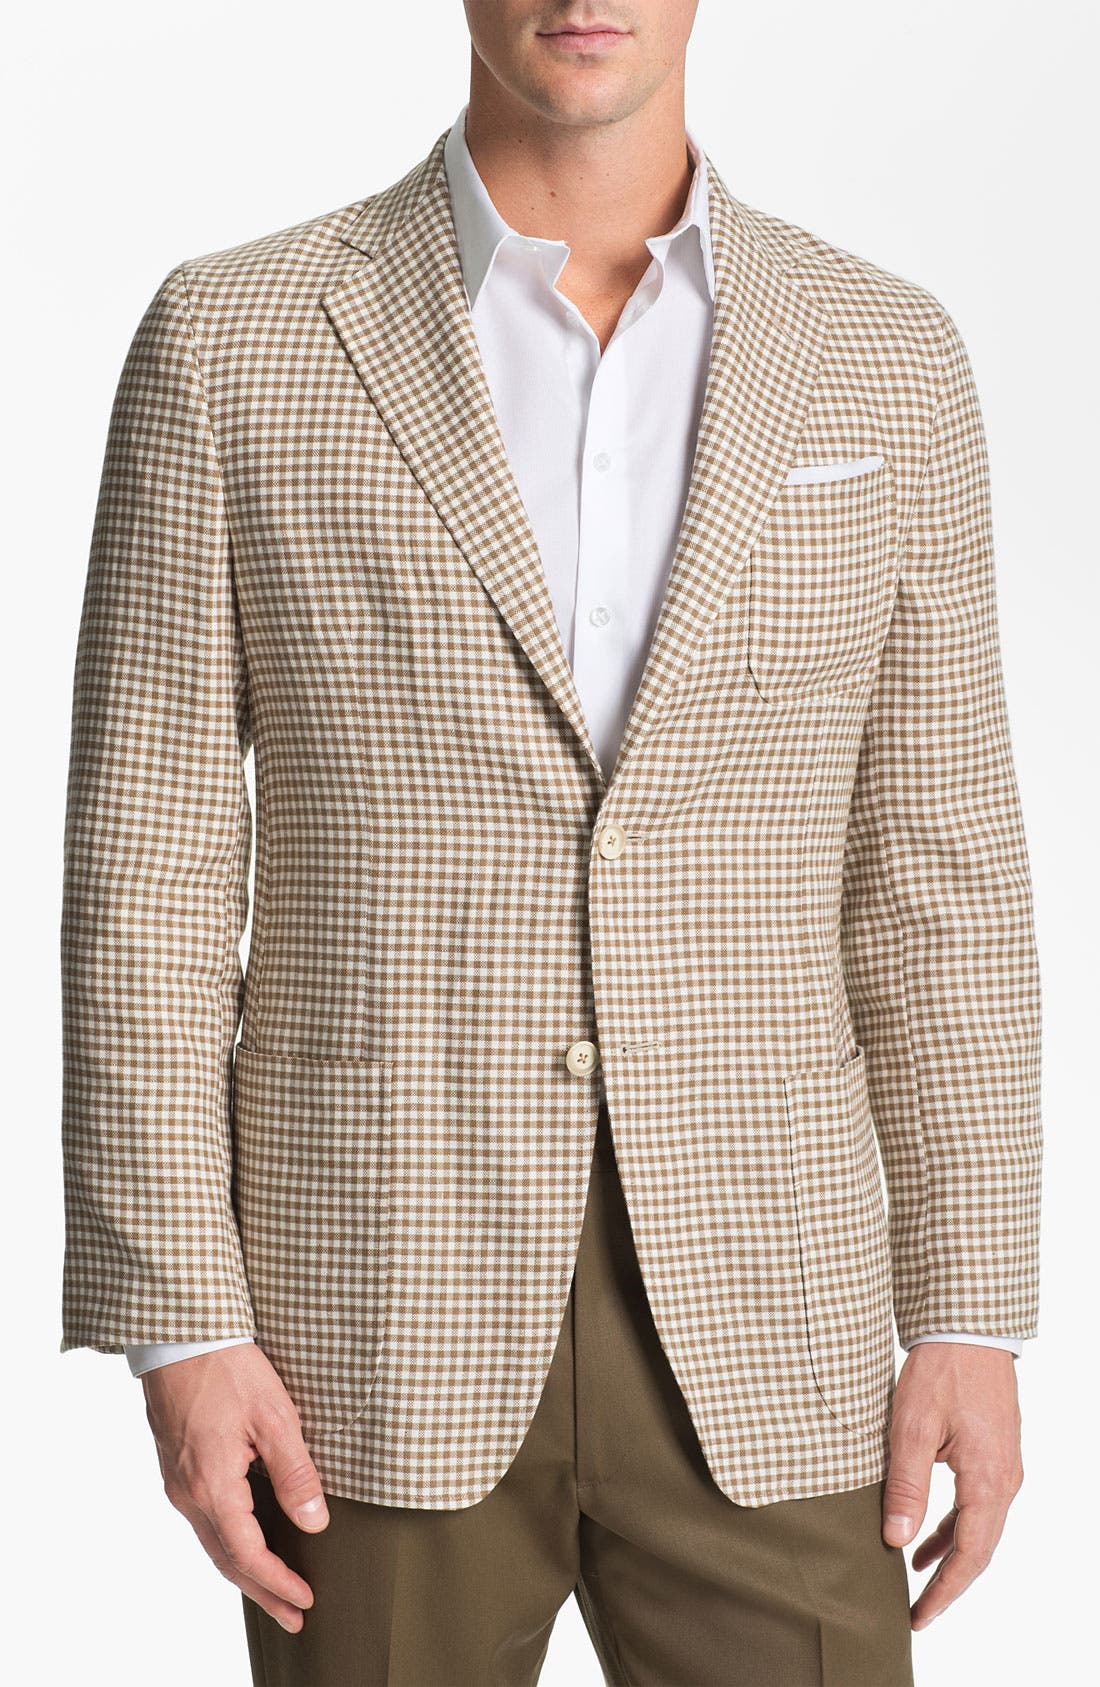 Alternate Image 1 Selected - Joseph Abboud Check Sportcoat